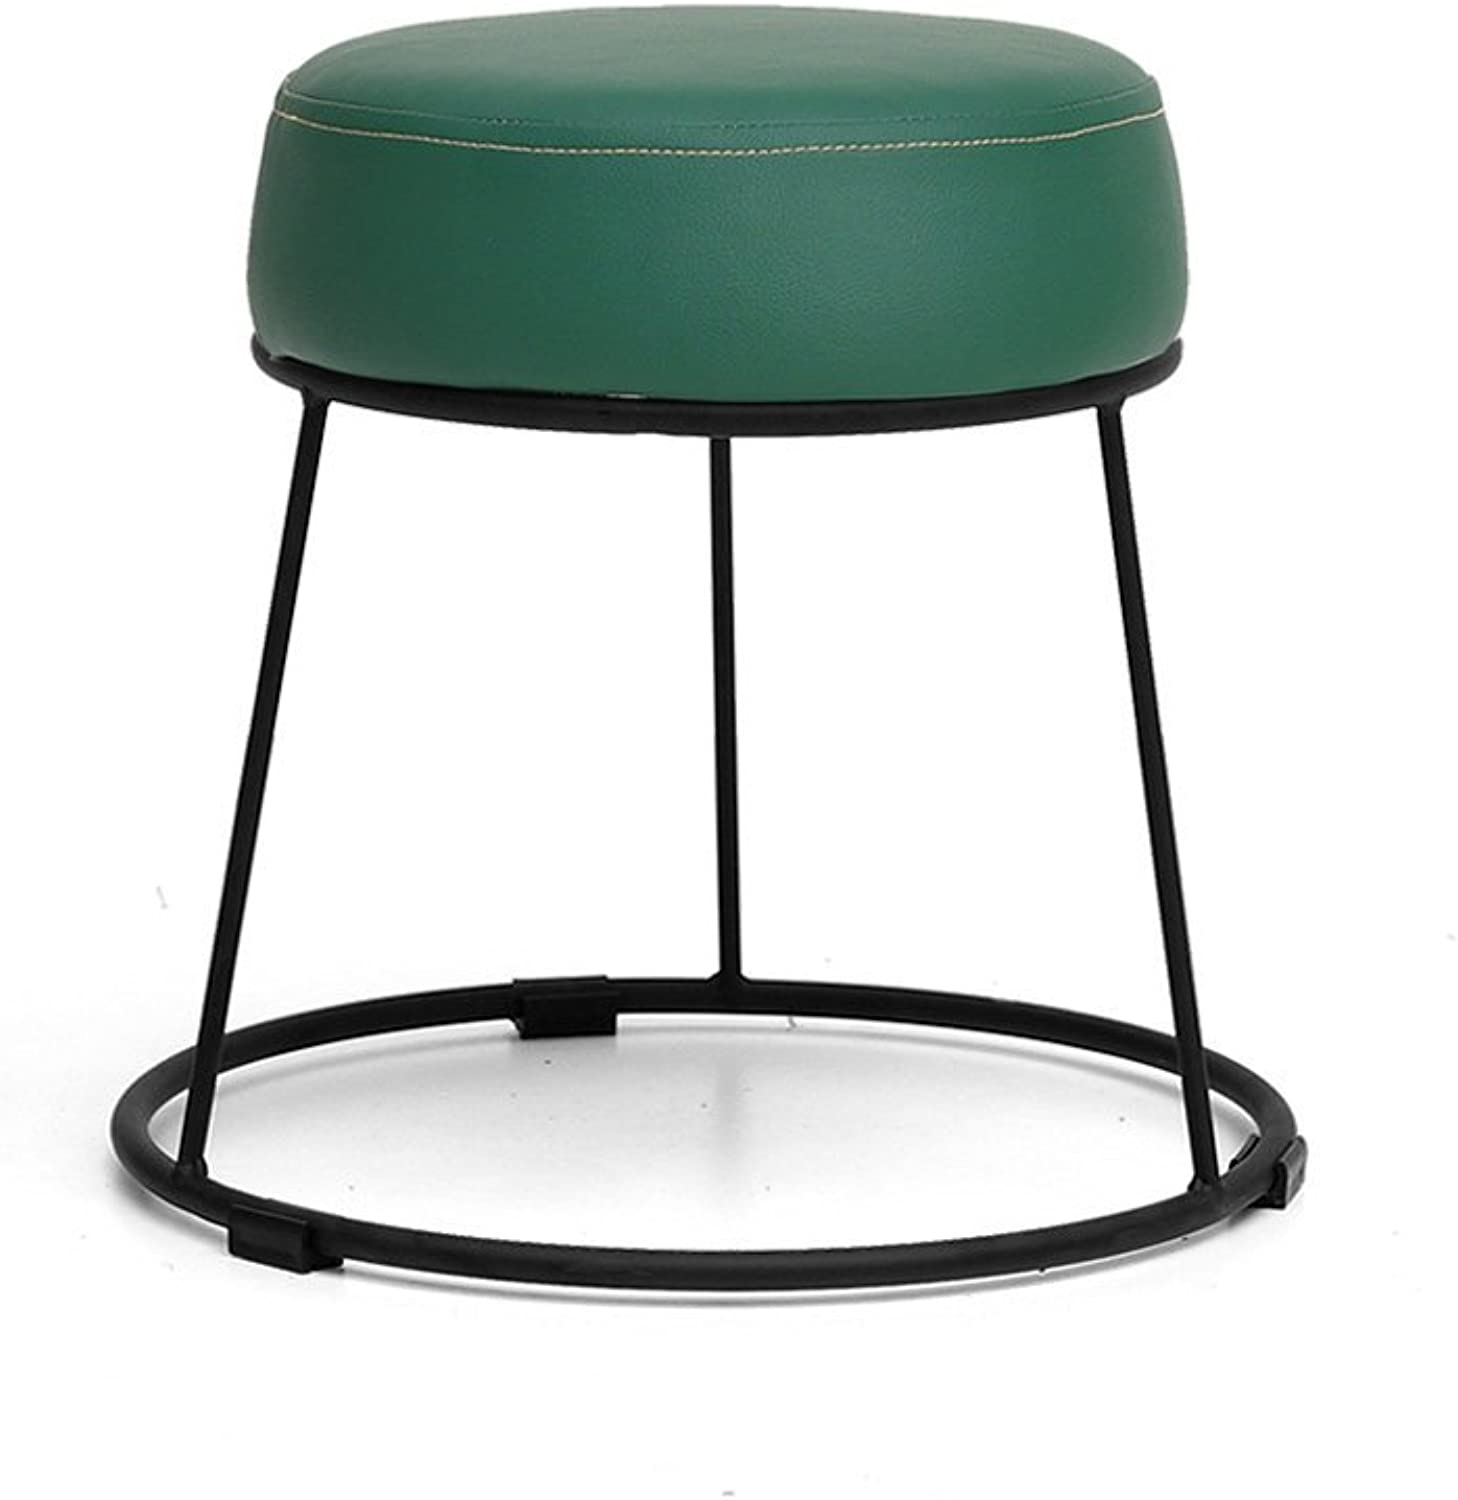 Wrought Iron Creative Stool,Linen Leather Modern Simple Nordic Style Minimalist Multifunctional Living Room Home Bedroom Dining Room Multicolor Stool-J